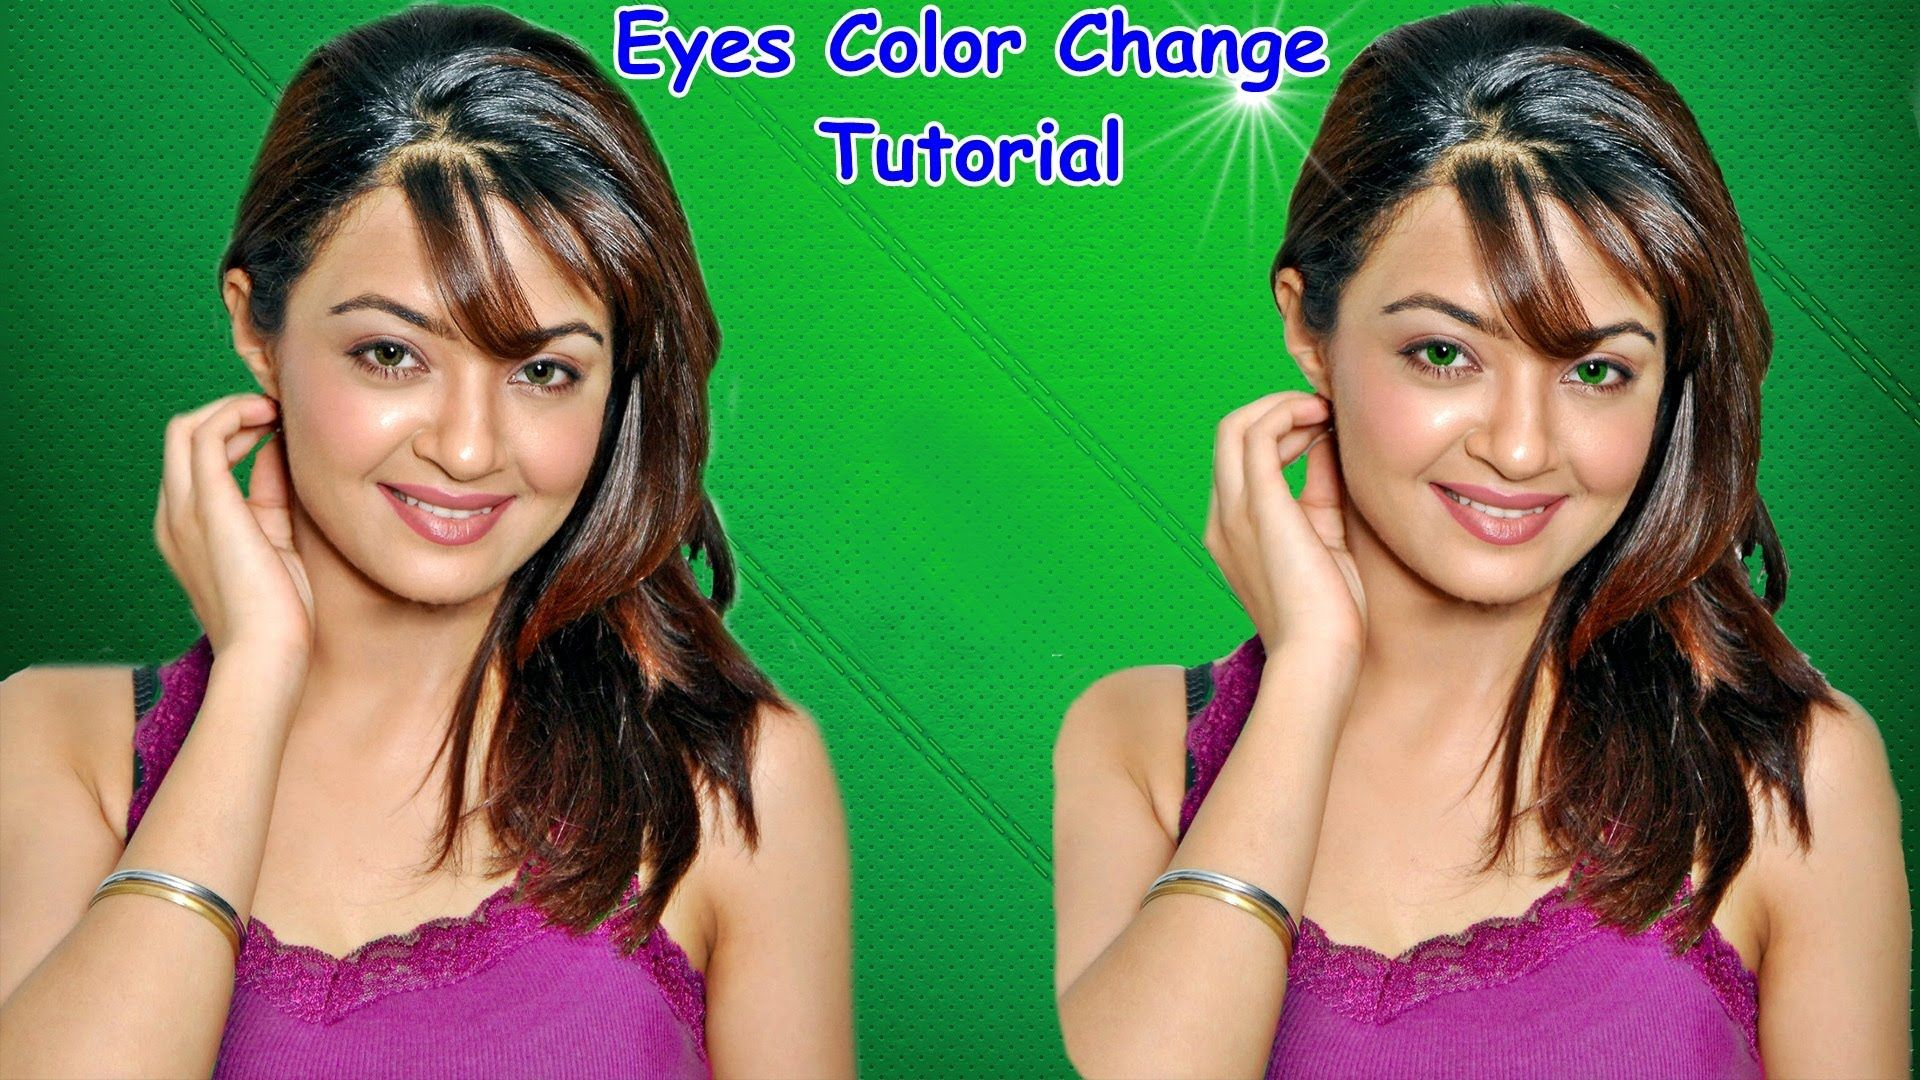 Photoshop cs6 how to change eye color in photoshop cs6 photoshop photoshop cs6 how to change eye color in photoshop cs6 photoshop cs6 ccuart Choice Image